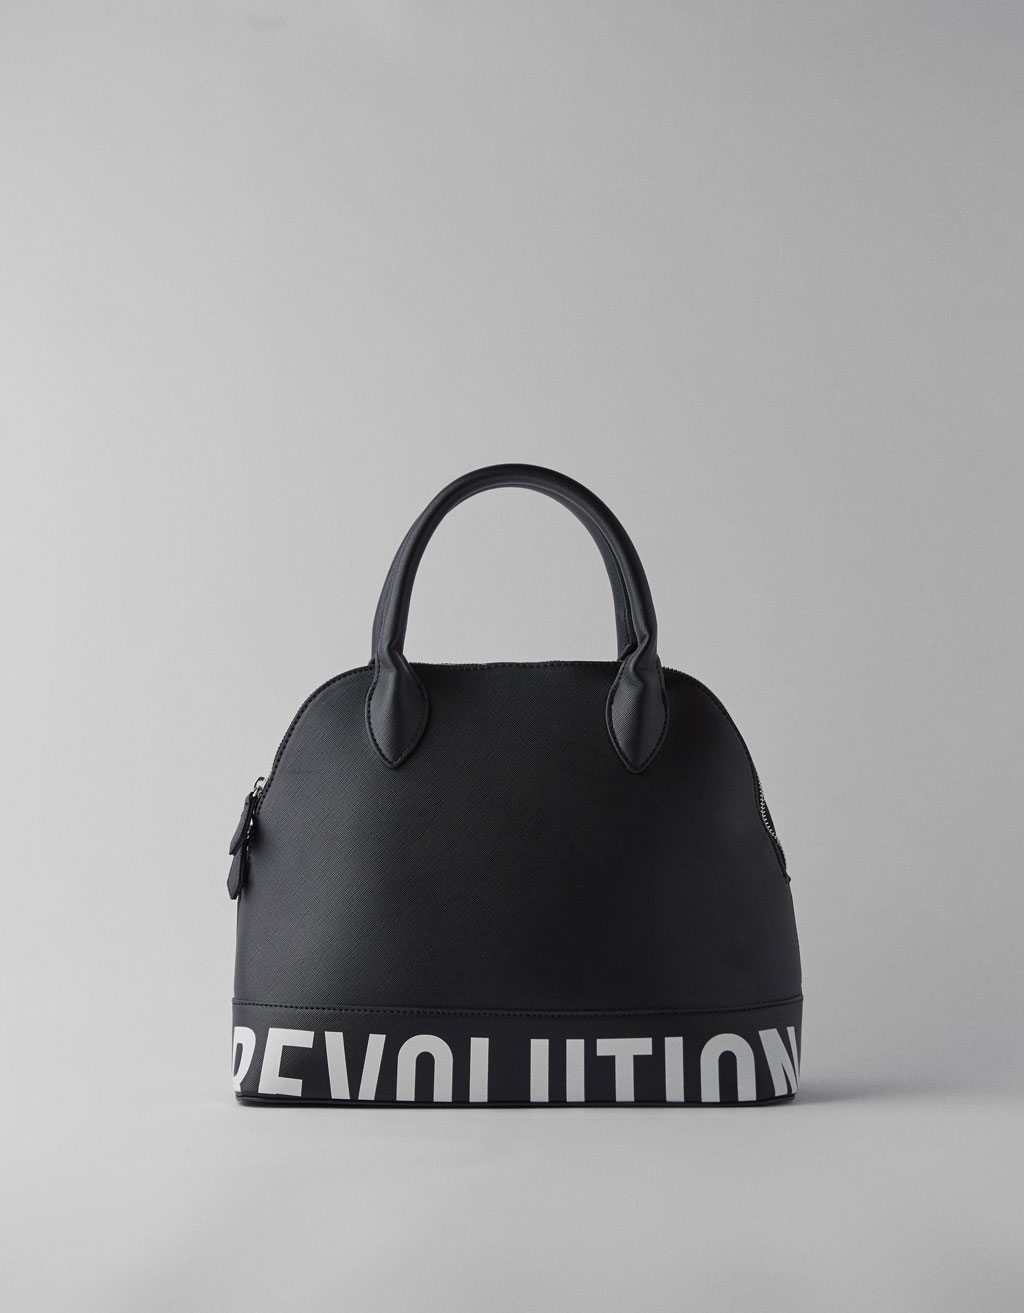 Evolution slogan bag